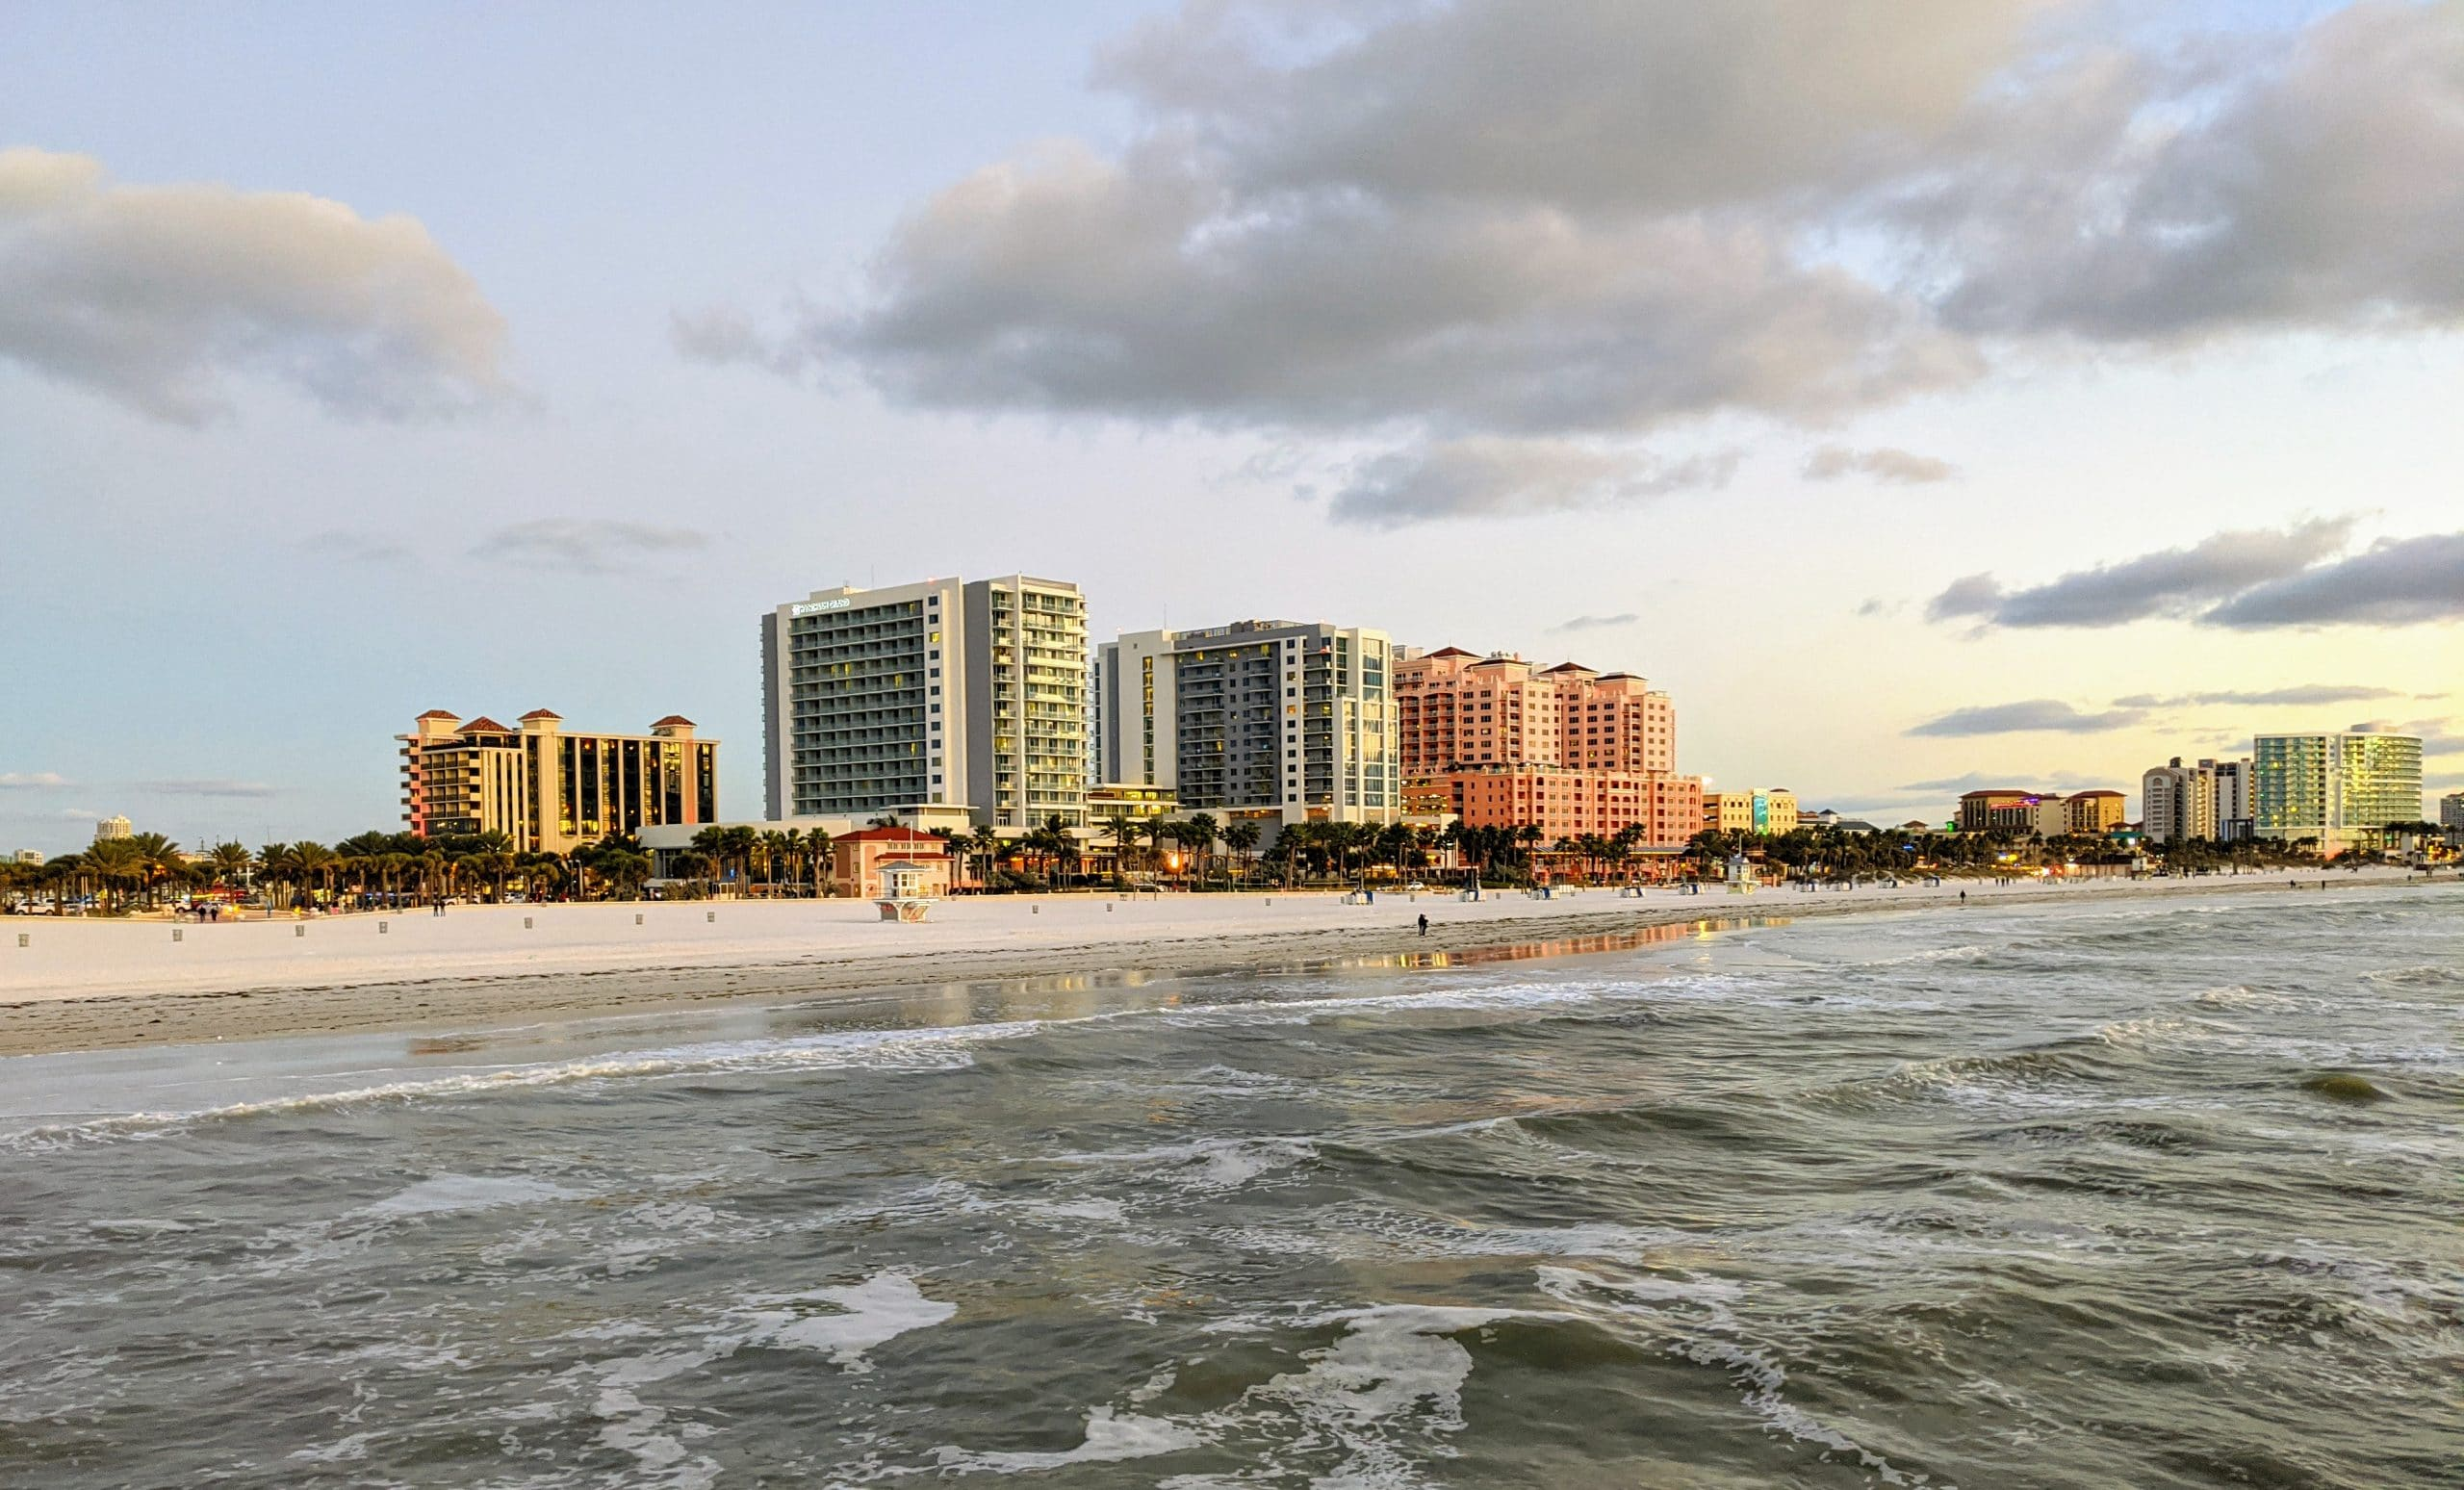 High rise apartment buildings that are located by the beach.